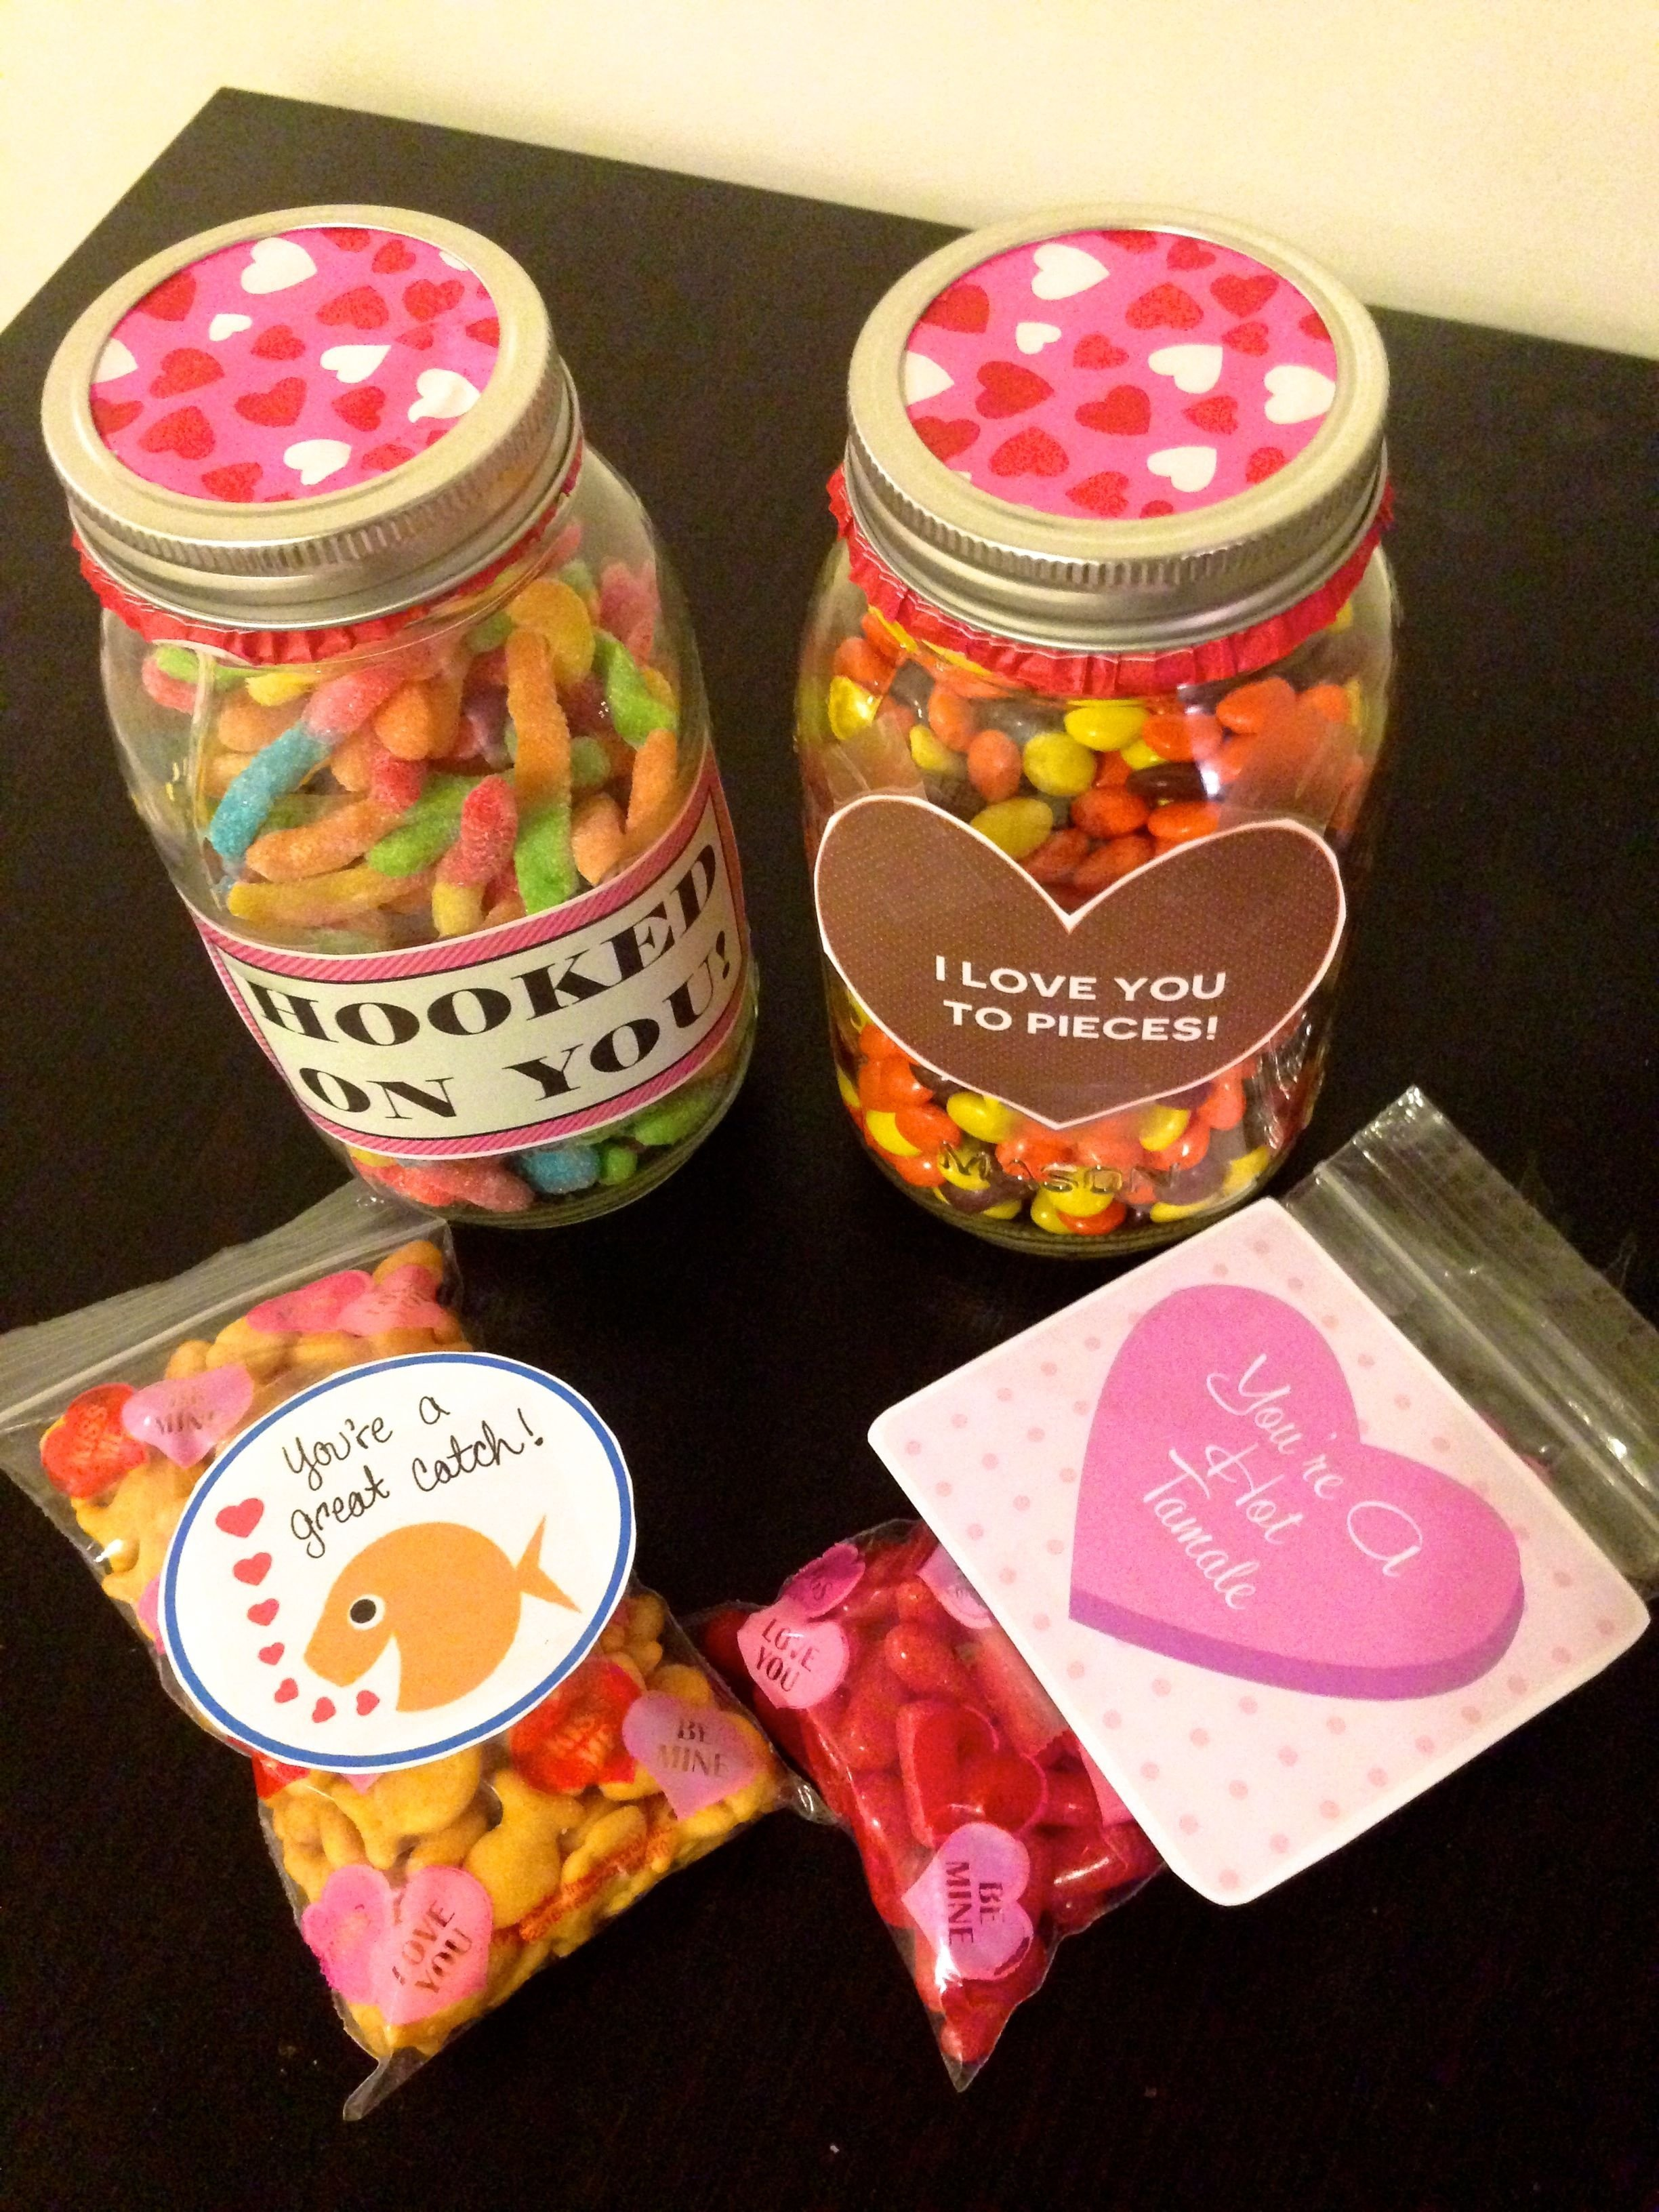 10 Elegant Sweet Valentines Day Ideas For Him romantic gift idea for him on a budget budgeting honey and romantic 2020